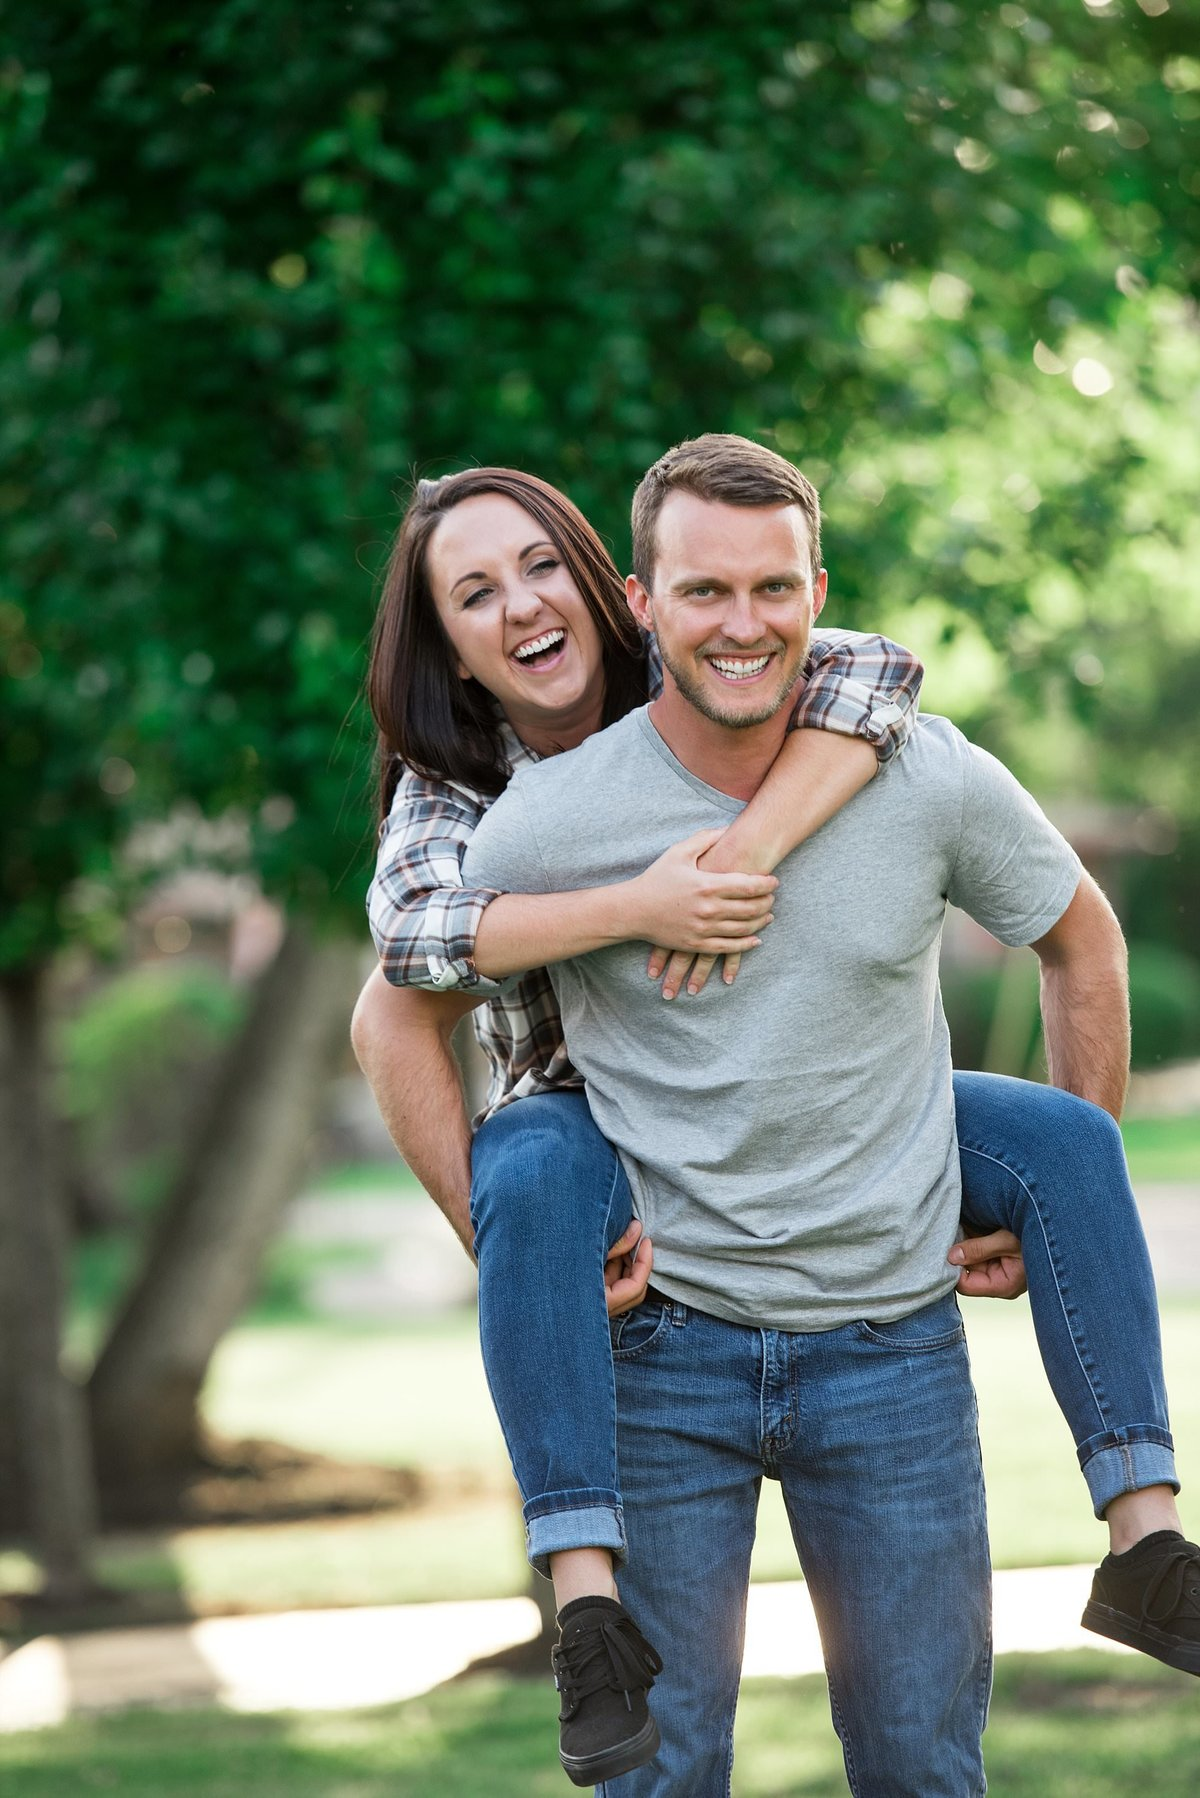 joyful-couples-portraits-nashville